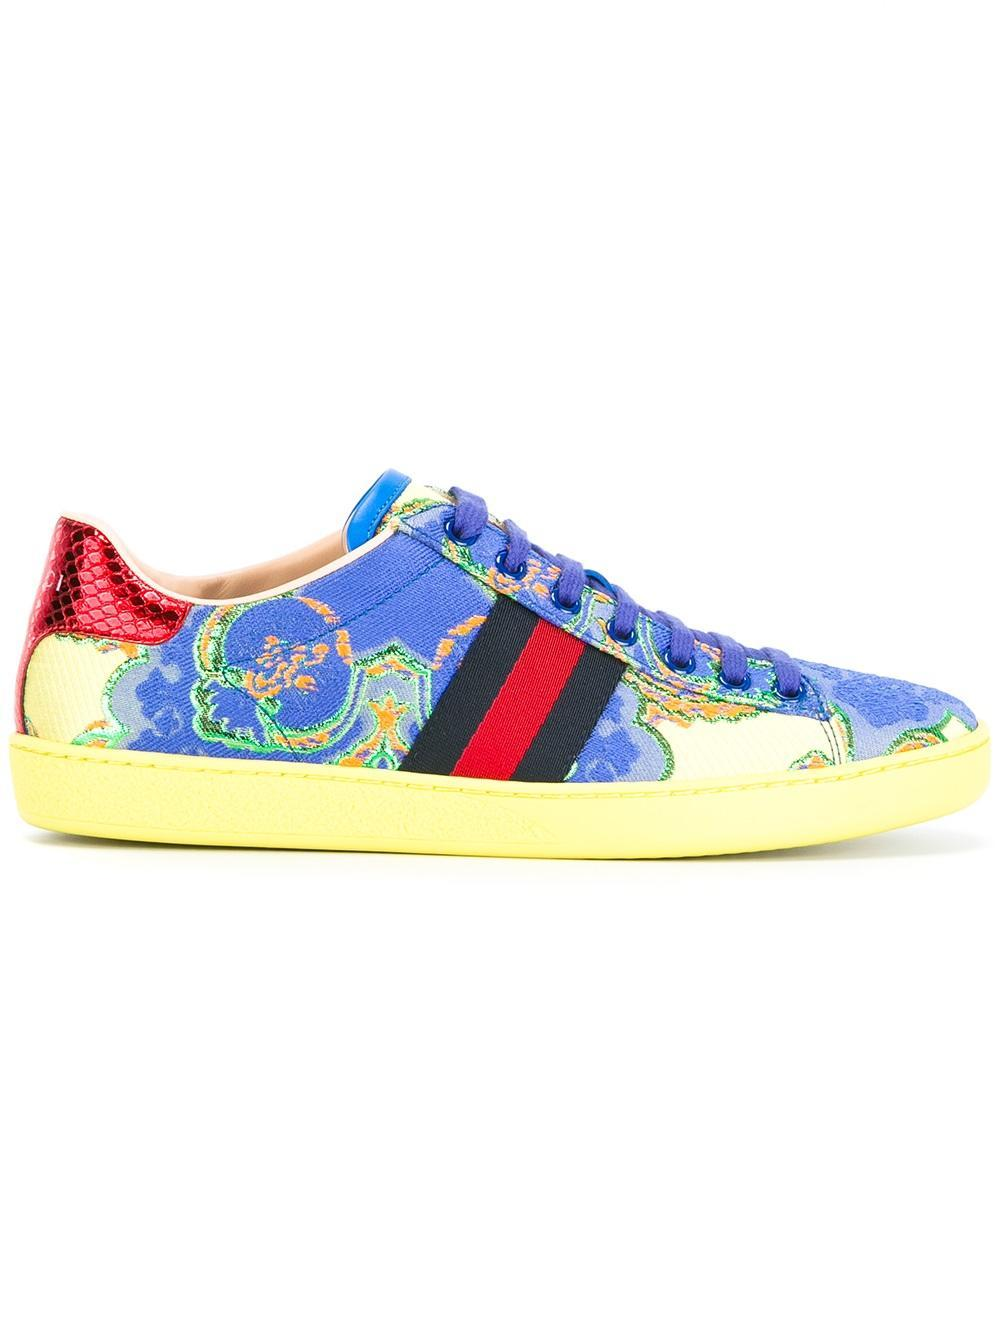 huge discount d776a 9ee1b Lyst - Gucci Low Top Sneaker Ace Jacquard Floral in Blue